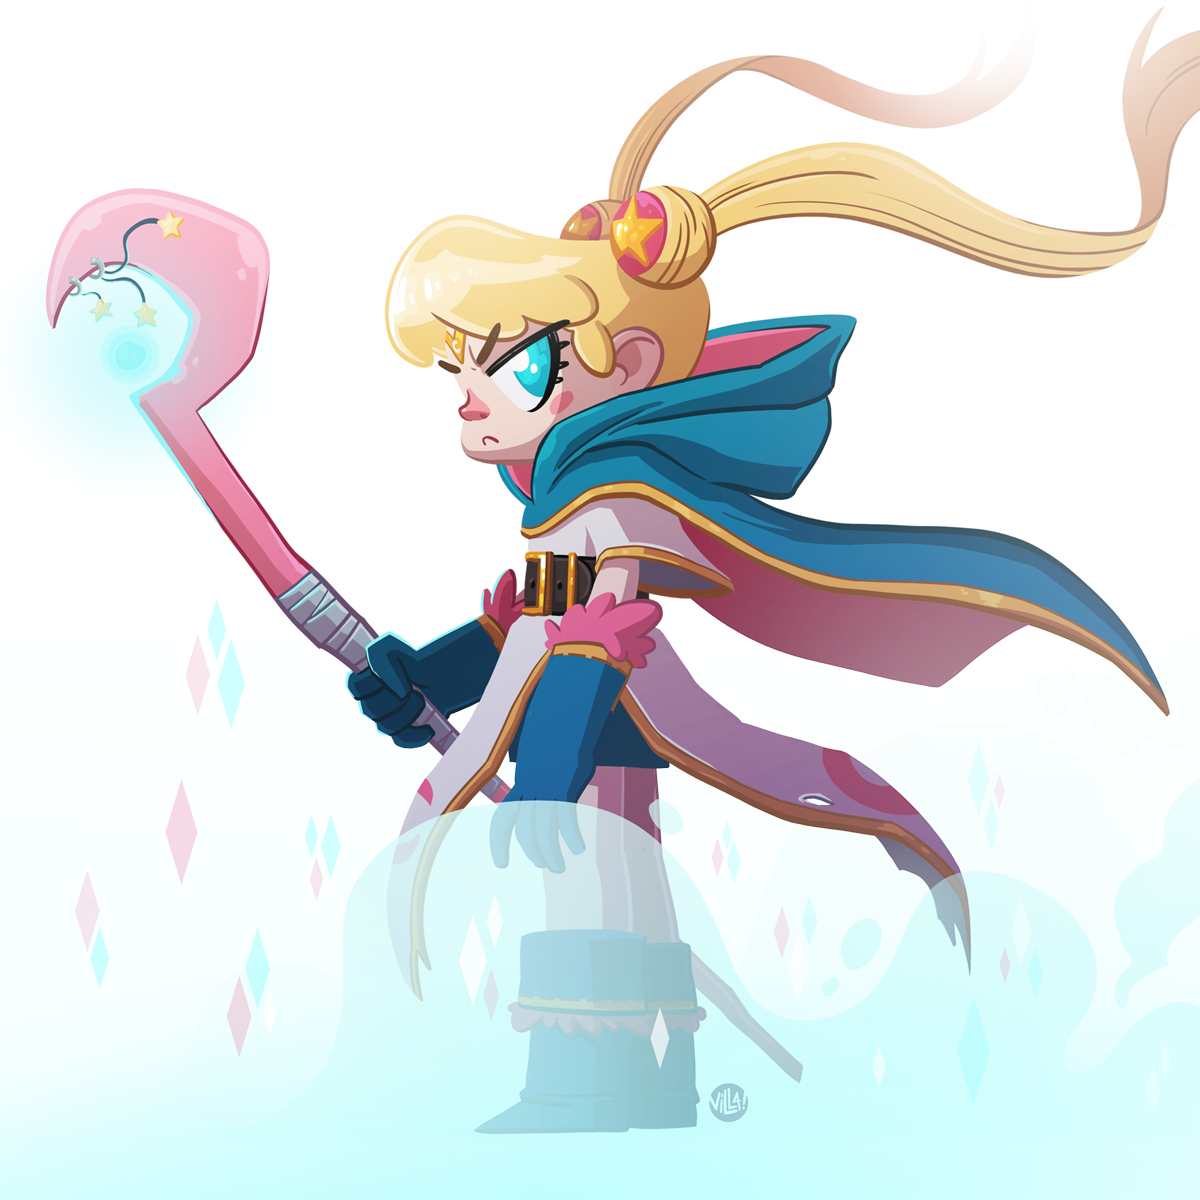 Daily Character Design Challenge : Character design challenge on behance